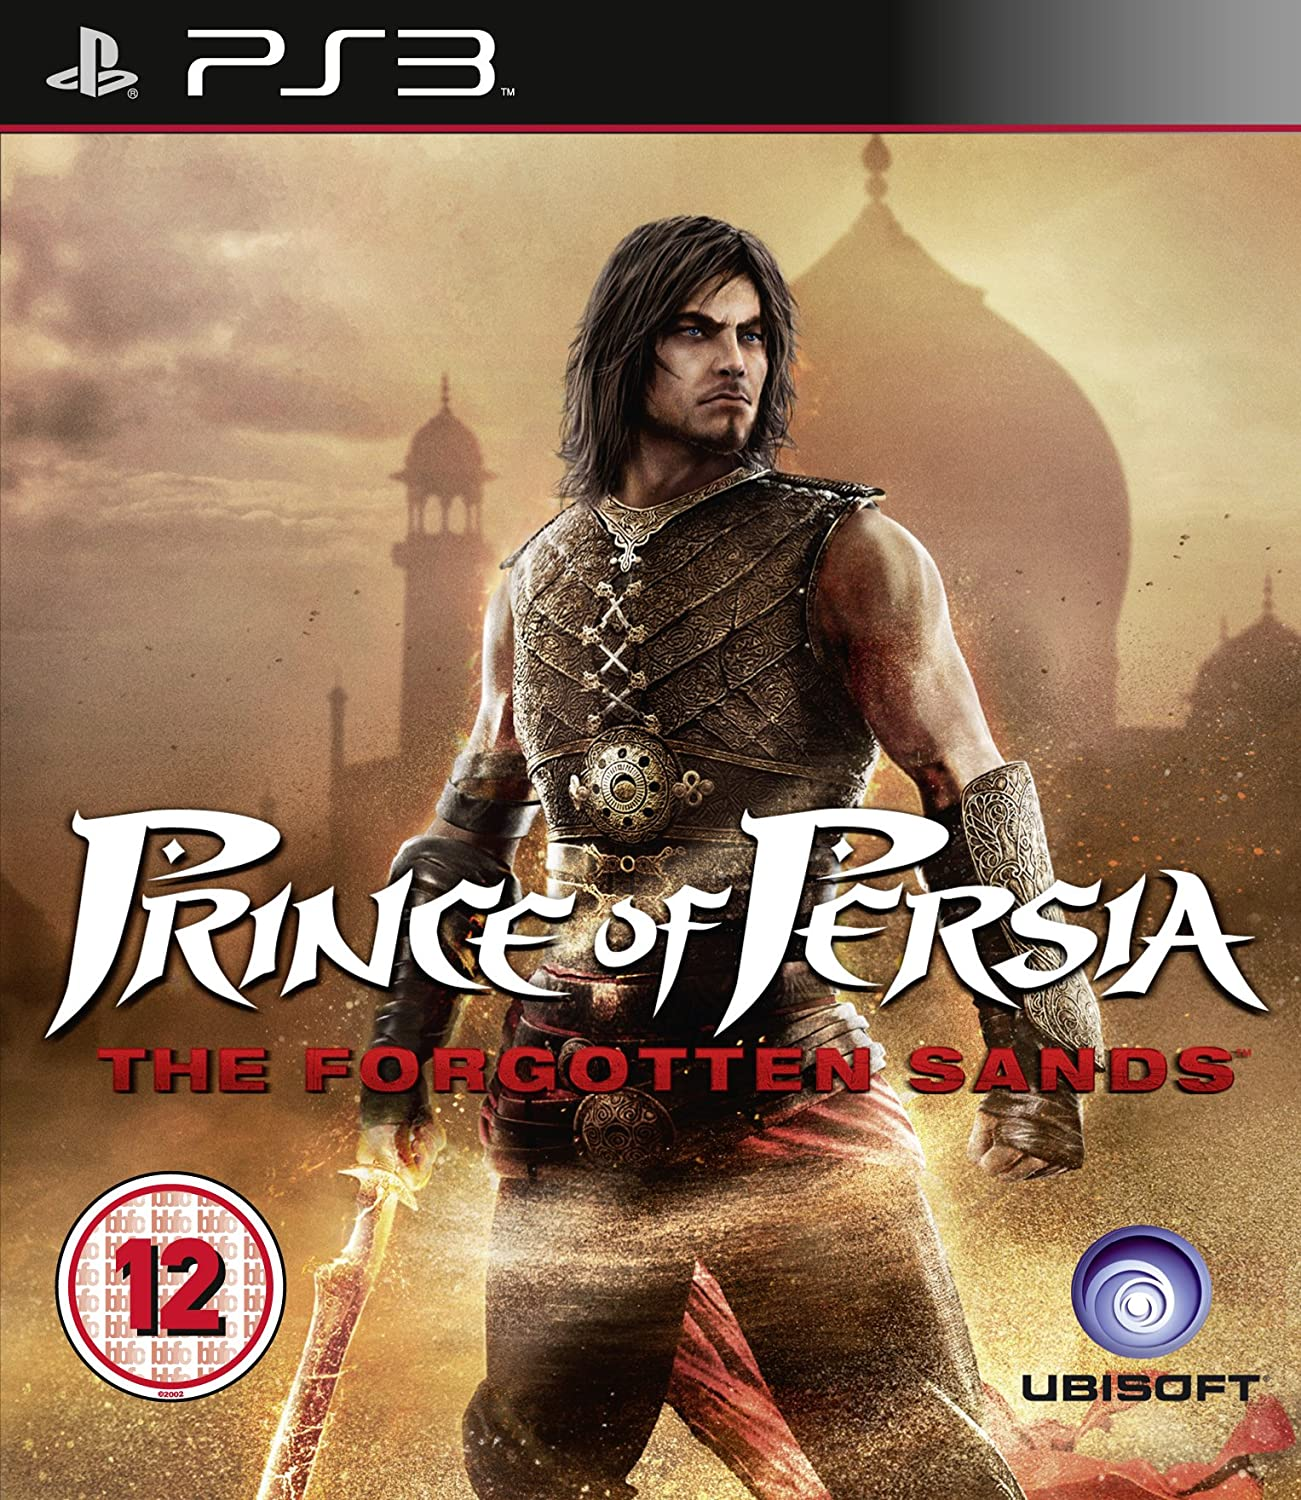 Buy Prince Of Persia The Forgotten Sands Pc Dvd Online At Low Prices In India Ubi Soft Video Games Amazon In